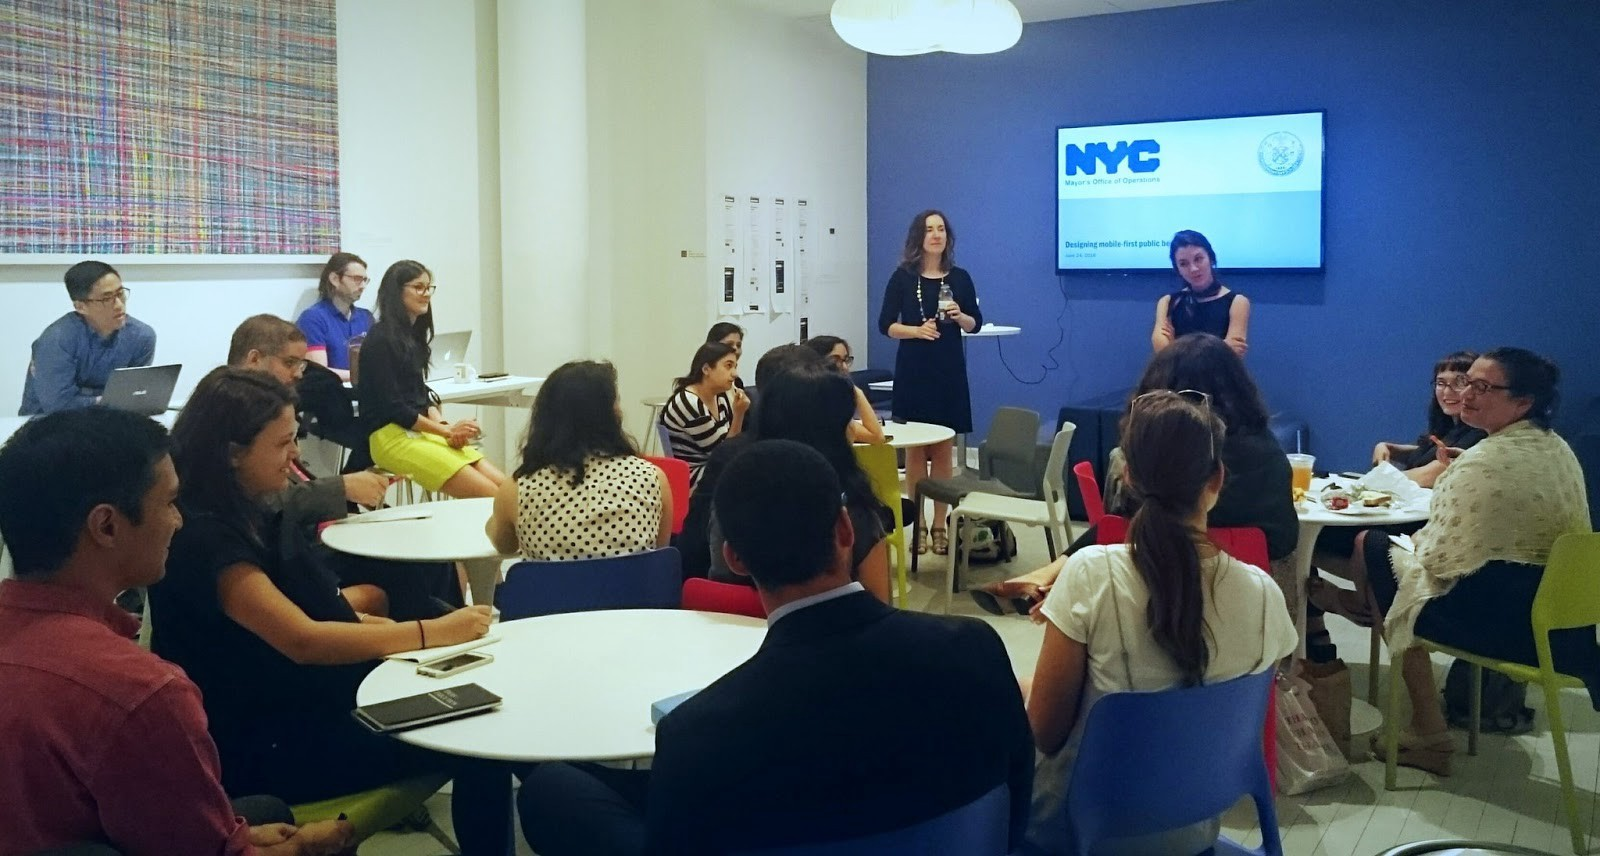 Case Study: ACCESS NYC — Part 1 - Civic Service Design Tools